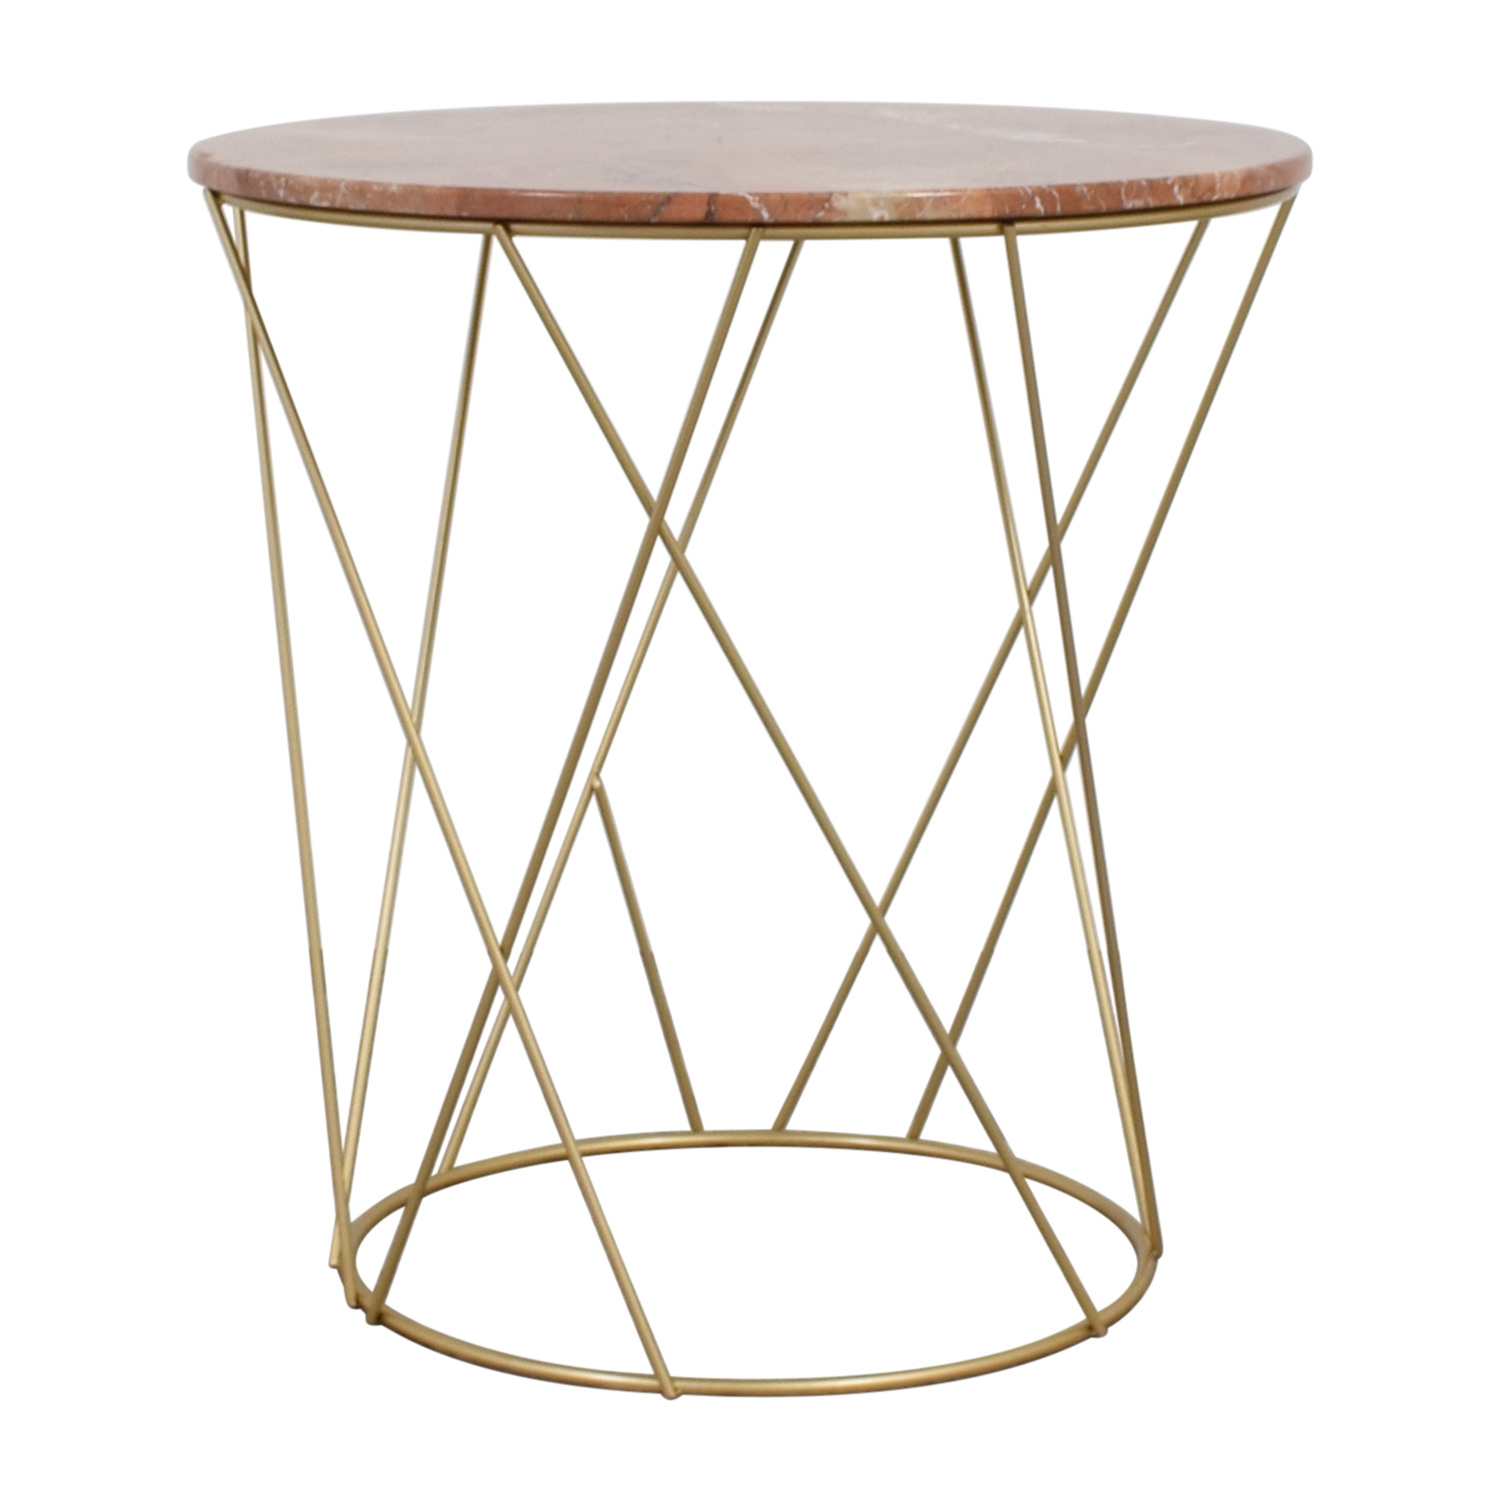 off lotus pink gold round marble table tables metal accent bench target white console blue lamp shade crystal small coffee sets bedroom furniture manufacturers outdoor brisbane